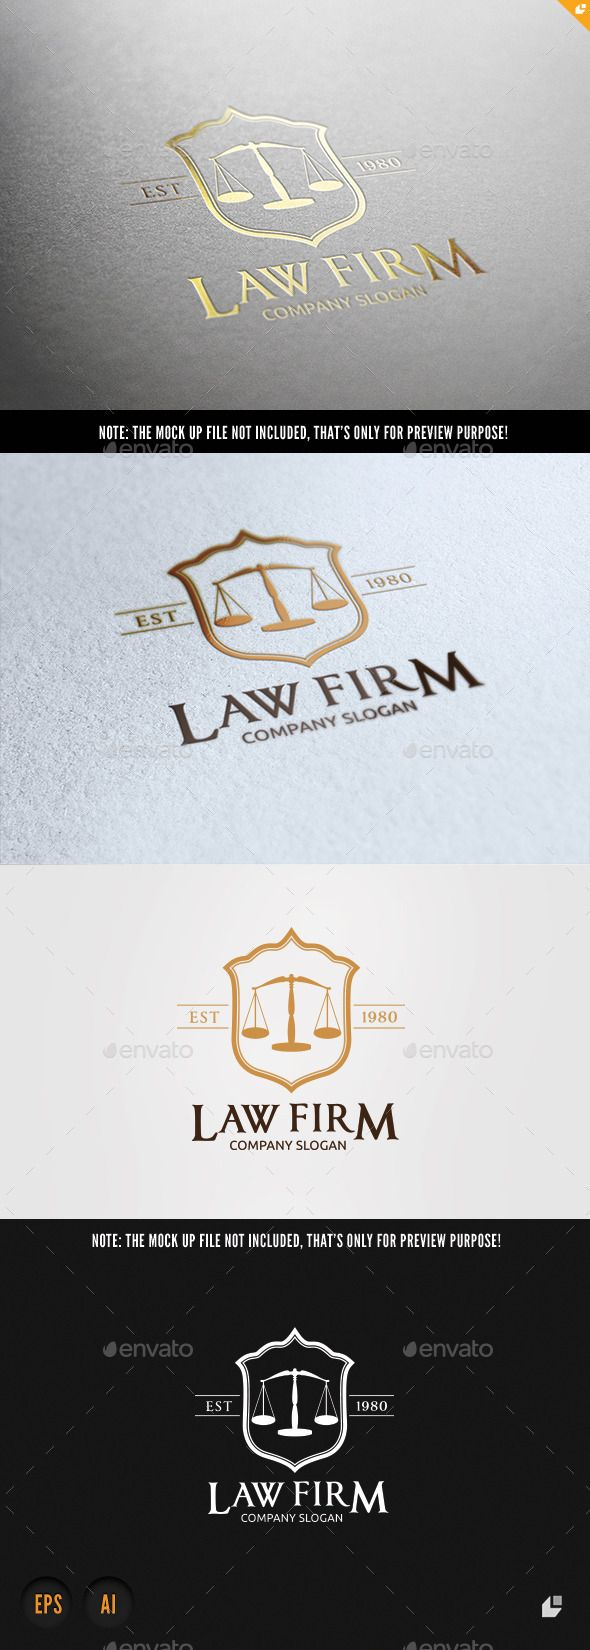 law and paralegal Definition of common law in the legal dictionary - by free online english dictionary and encyclopedia what is common law meaning of common law as a legal term what does common law mean in law.